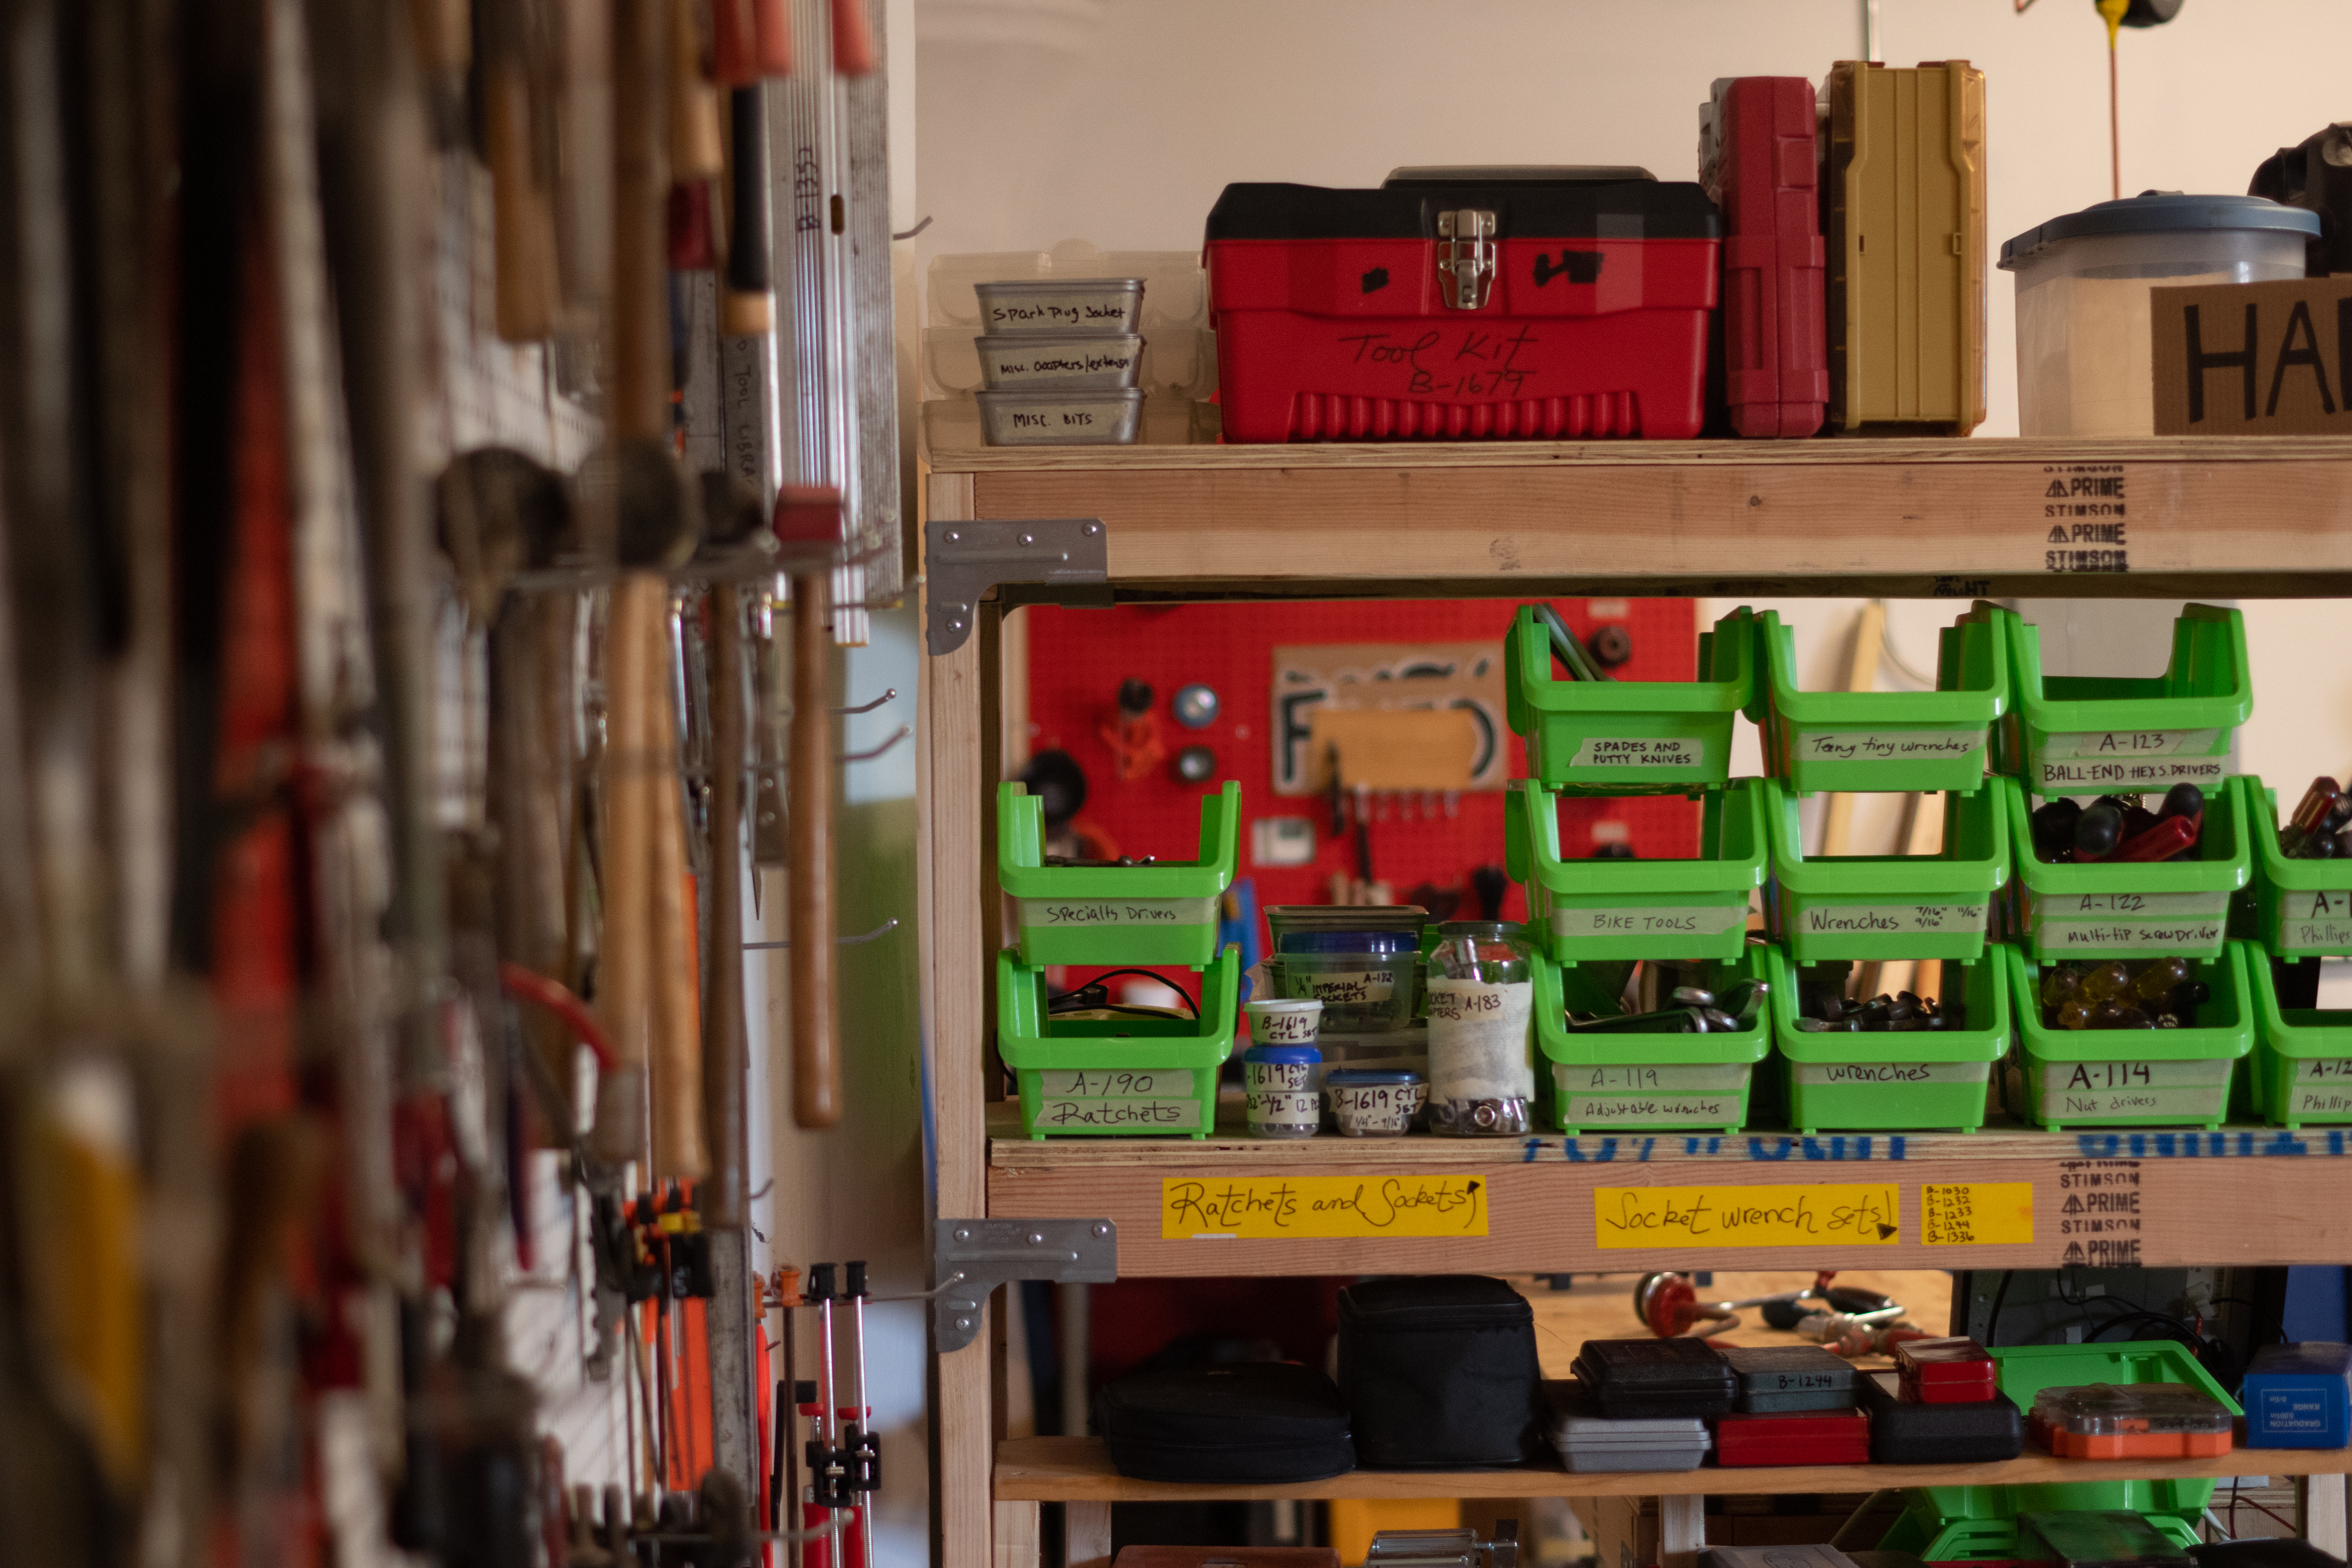 A photo of green bins with tools, wooden shelves, and red tool boxes.